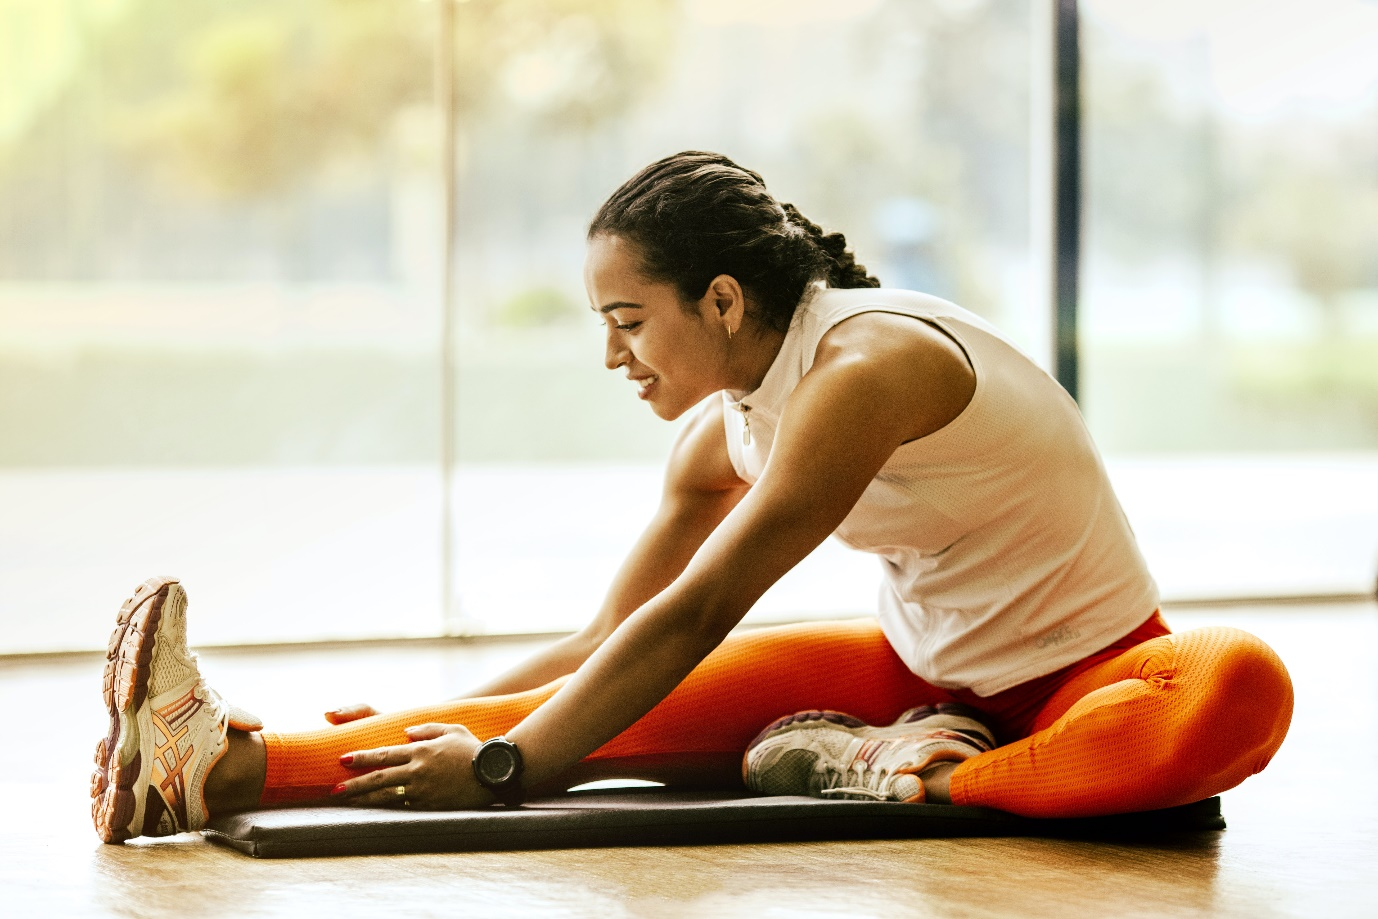 WHY IS IT CRUCIAL TO STAY FIT?